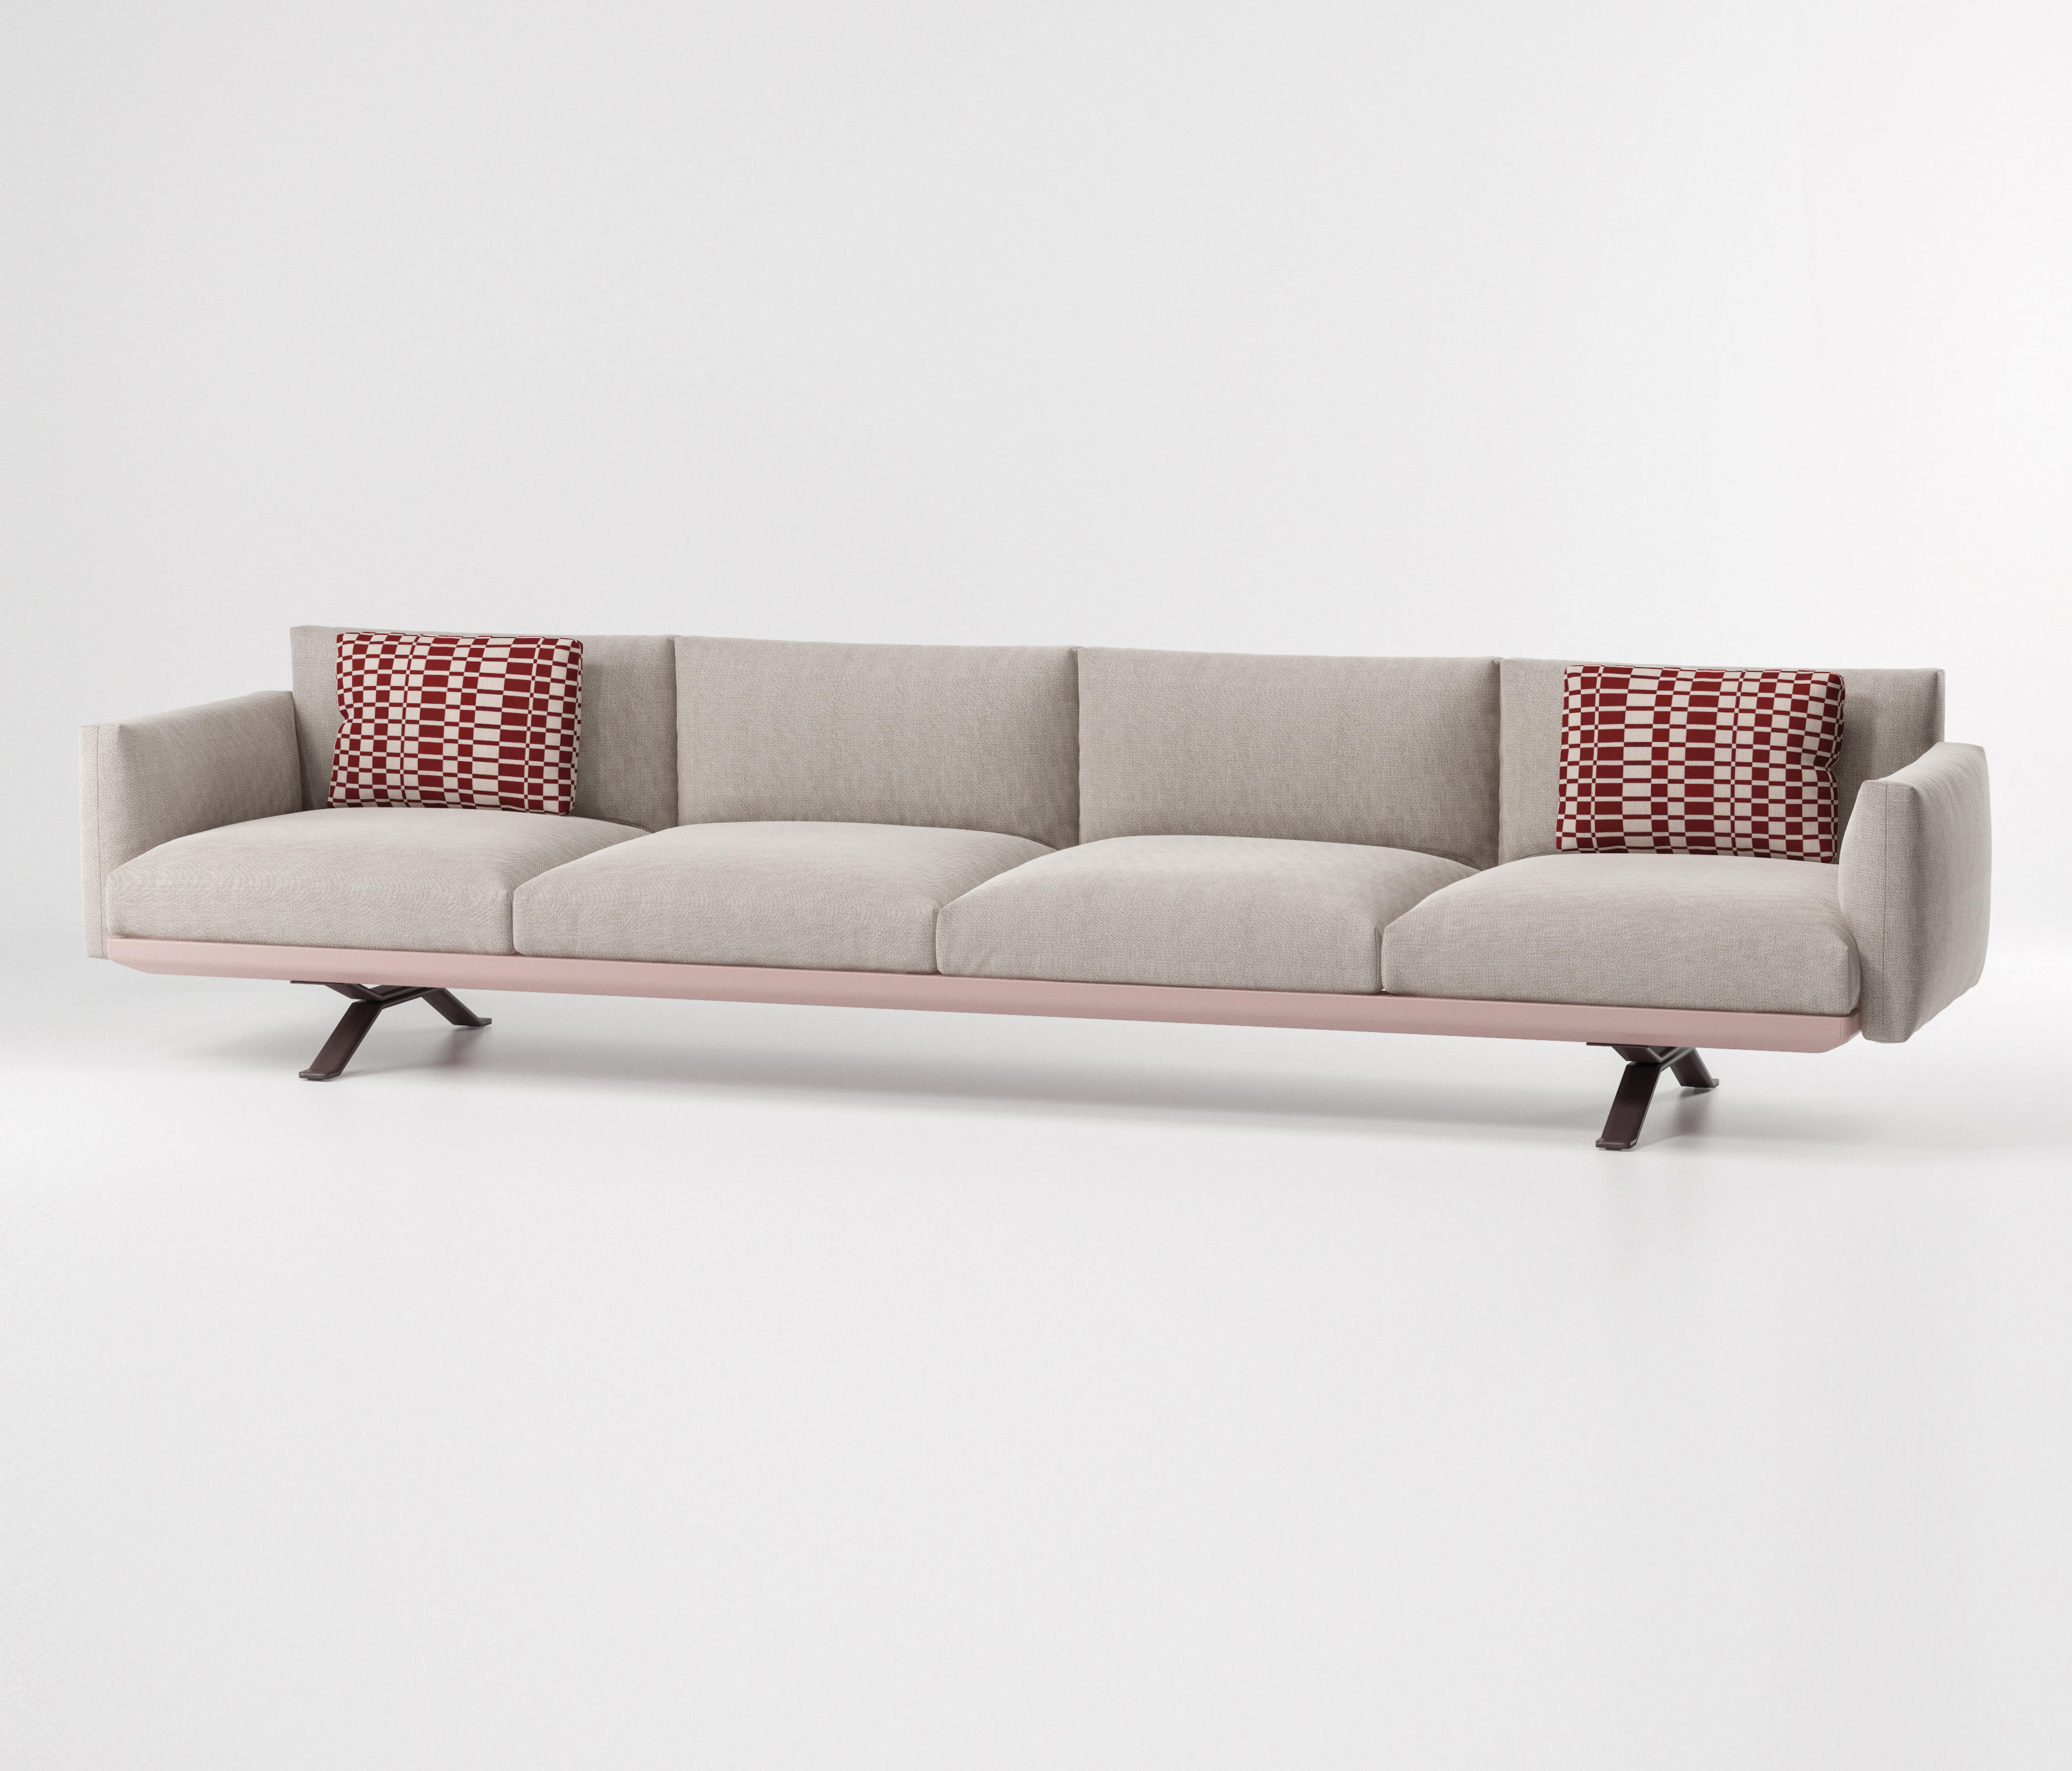 BOMA 4-SEATER SOFA - Sofas from KETTAL   Architonic